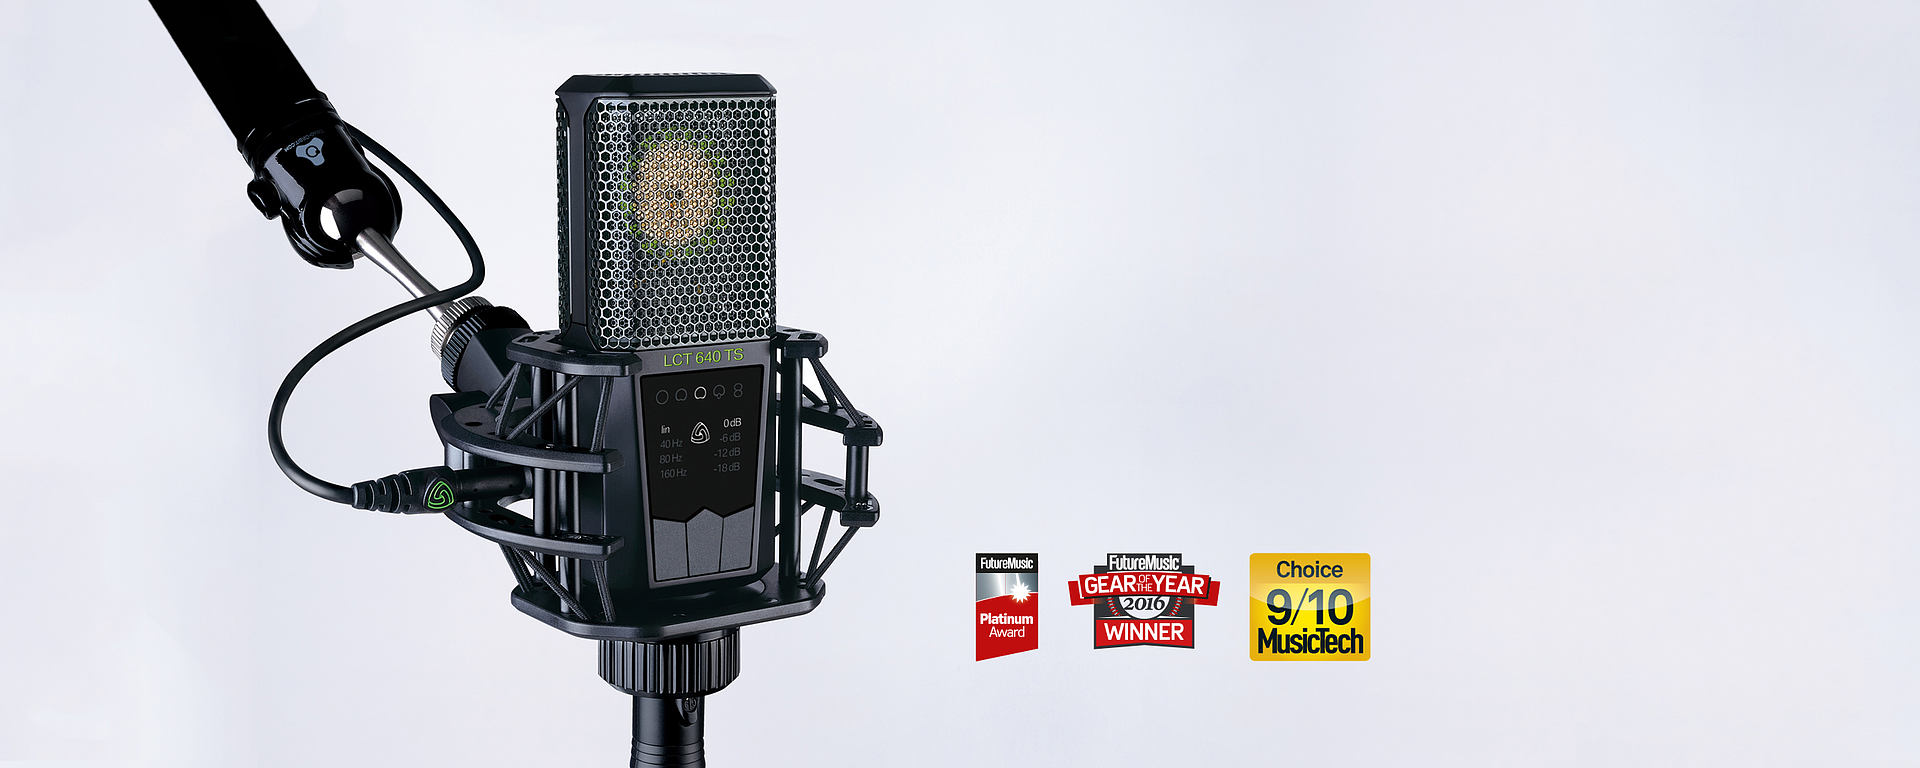 LCT 640 TS microphone